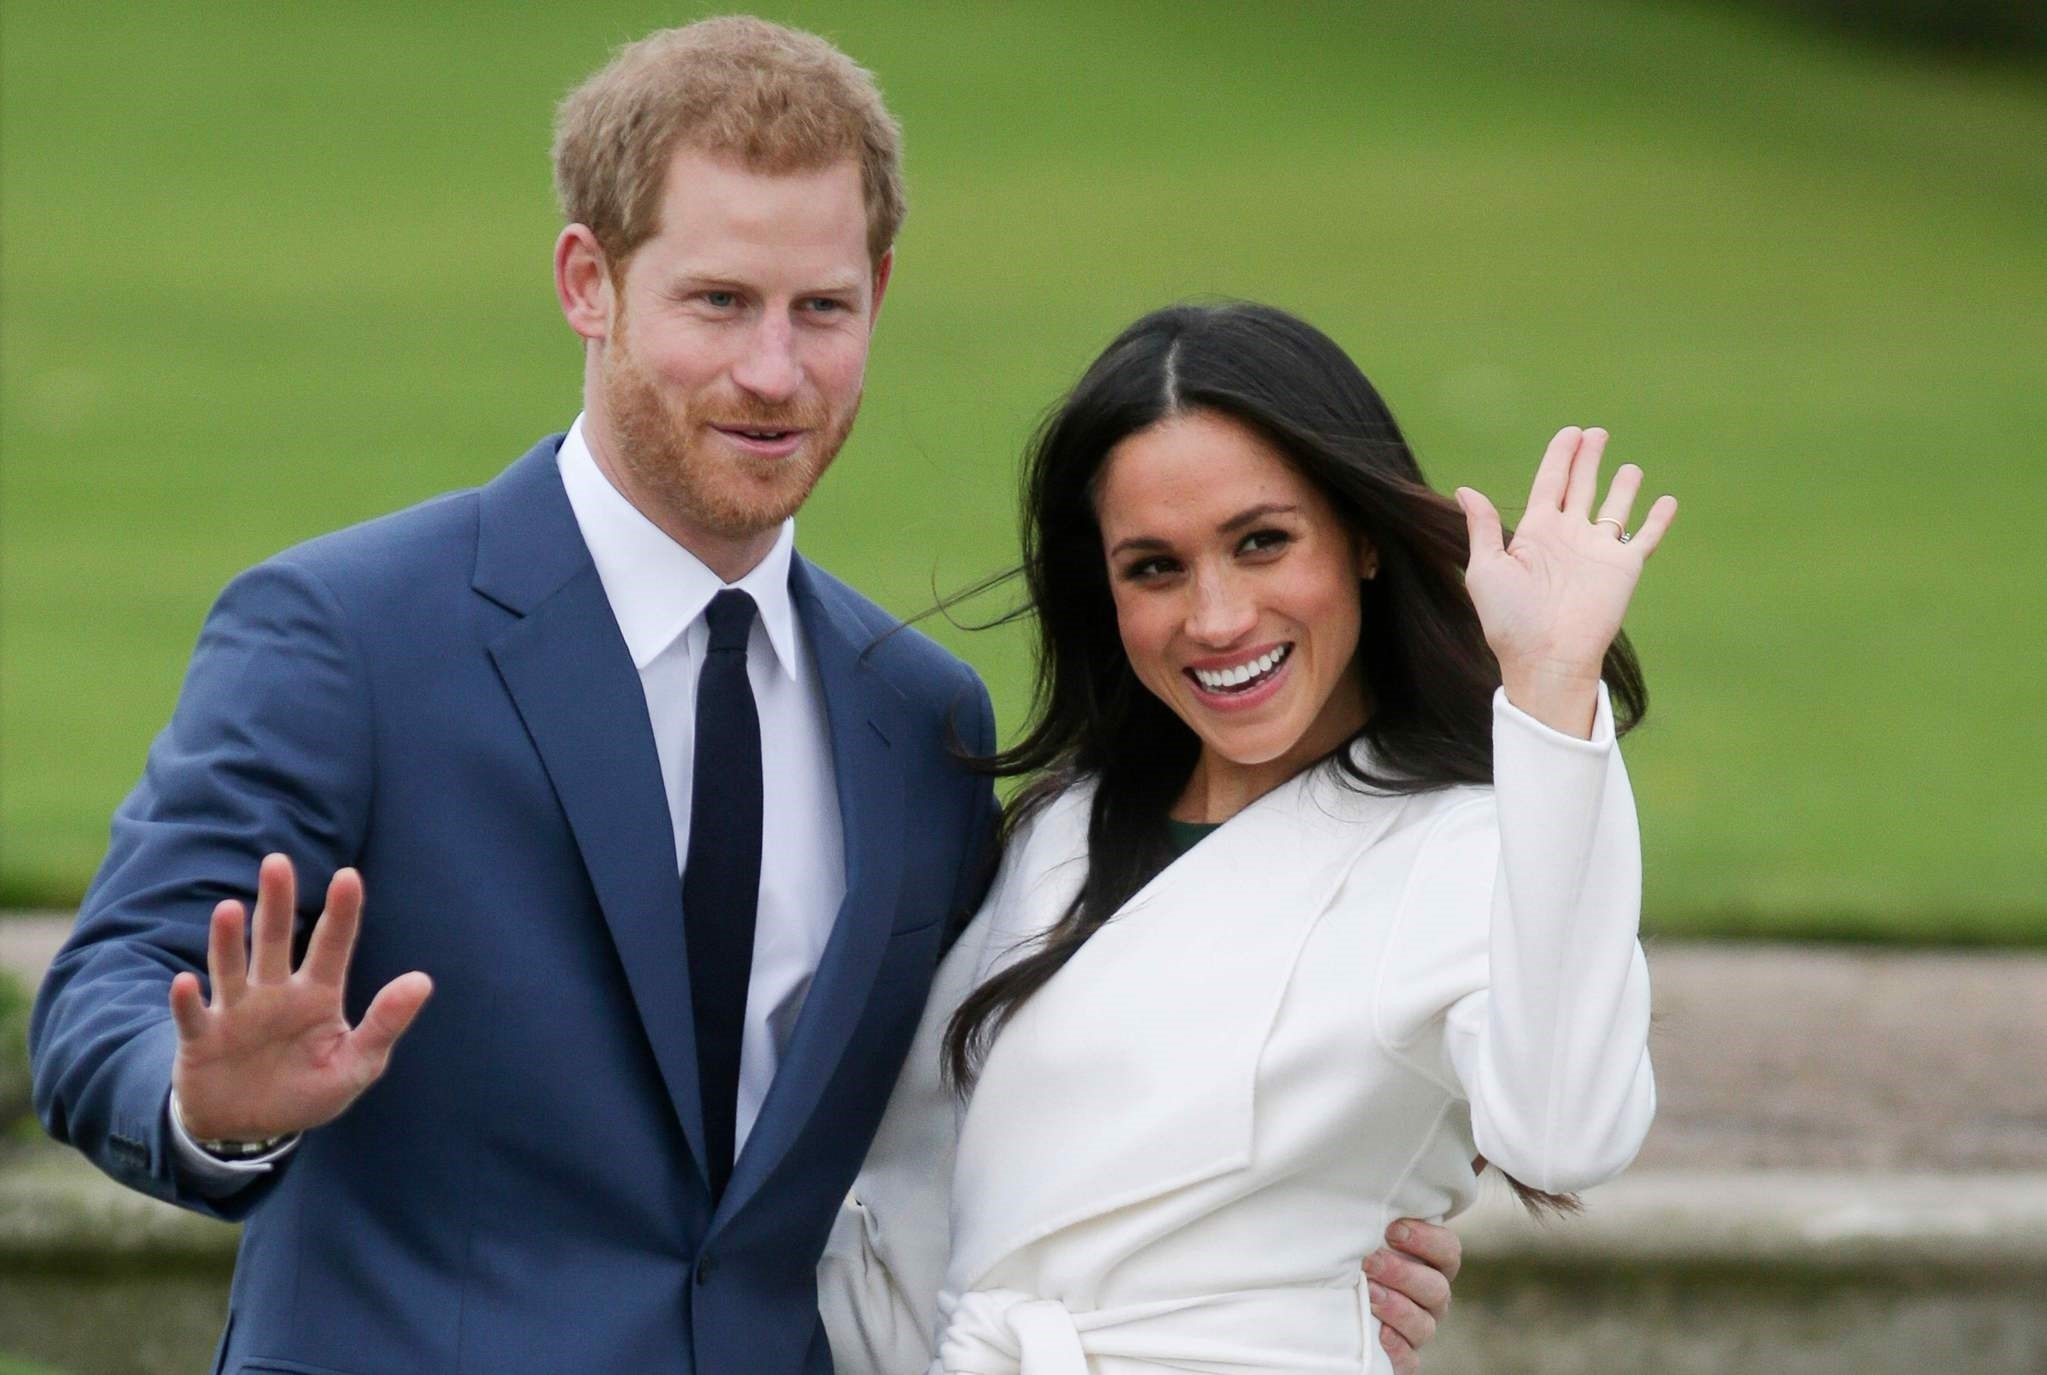 This file photo taken on November 27, 2017 shows Britain's Prince Harry and his fiancu00e9e US actress Meghan Markle posing for a photograph in the Sunken Garden at Kensington Palace. (AFP Photo)